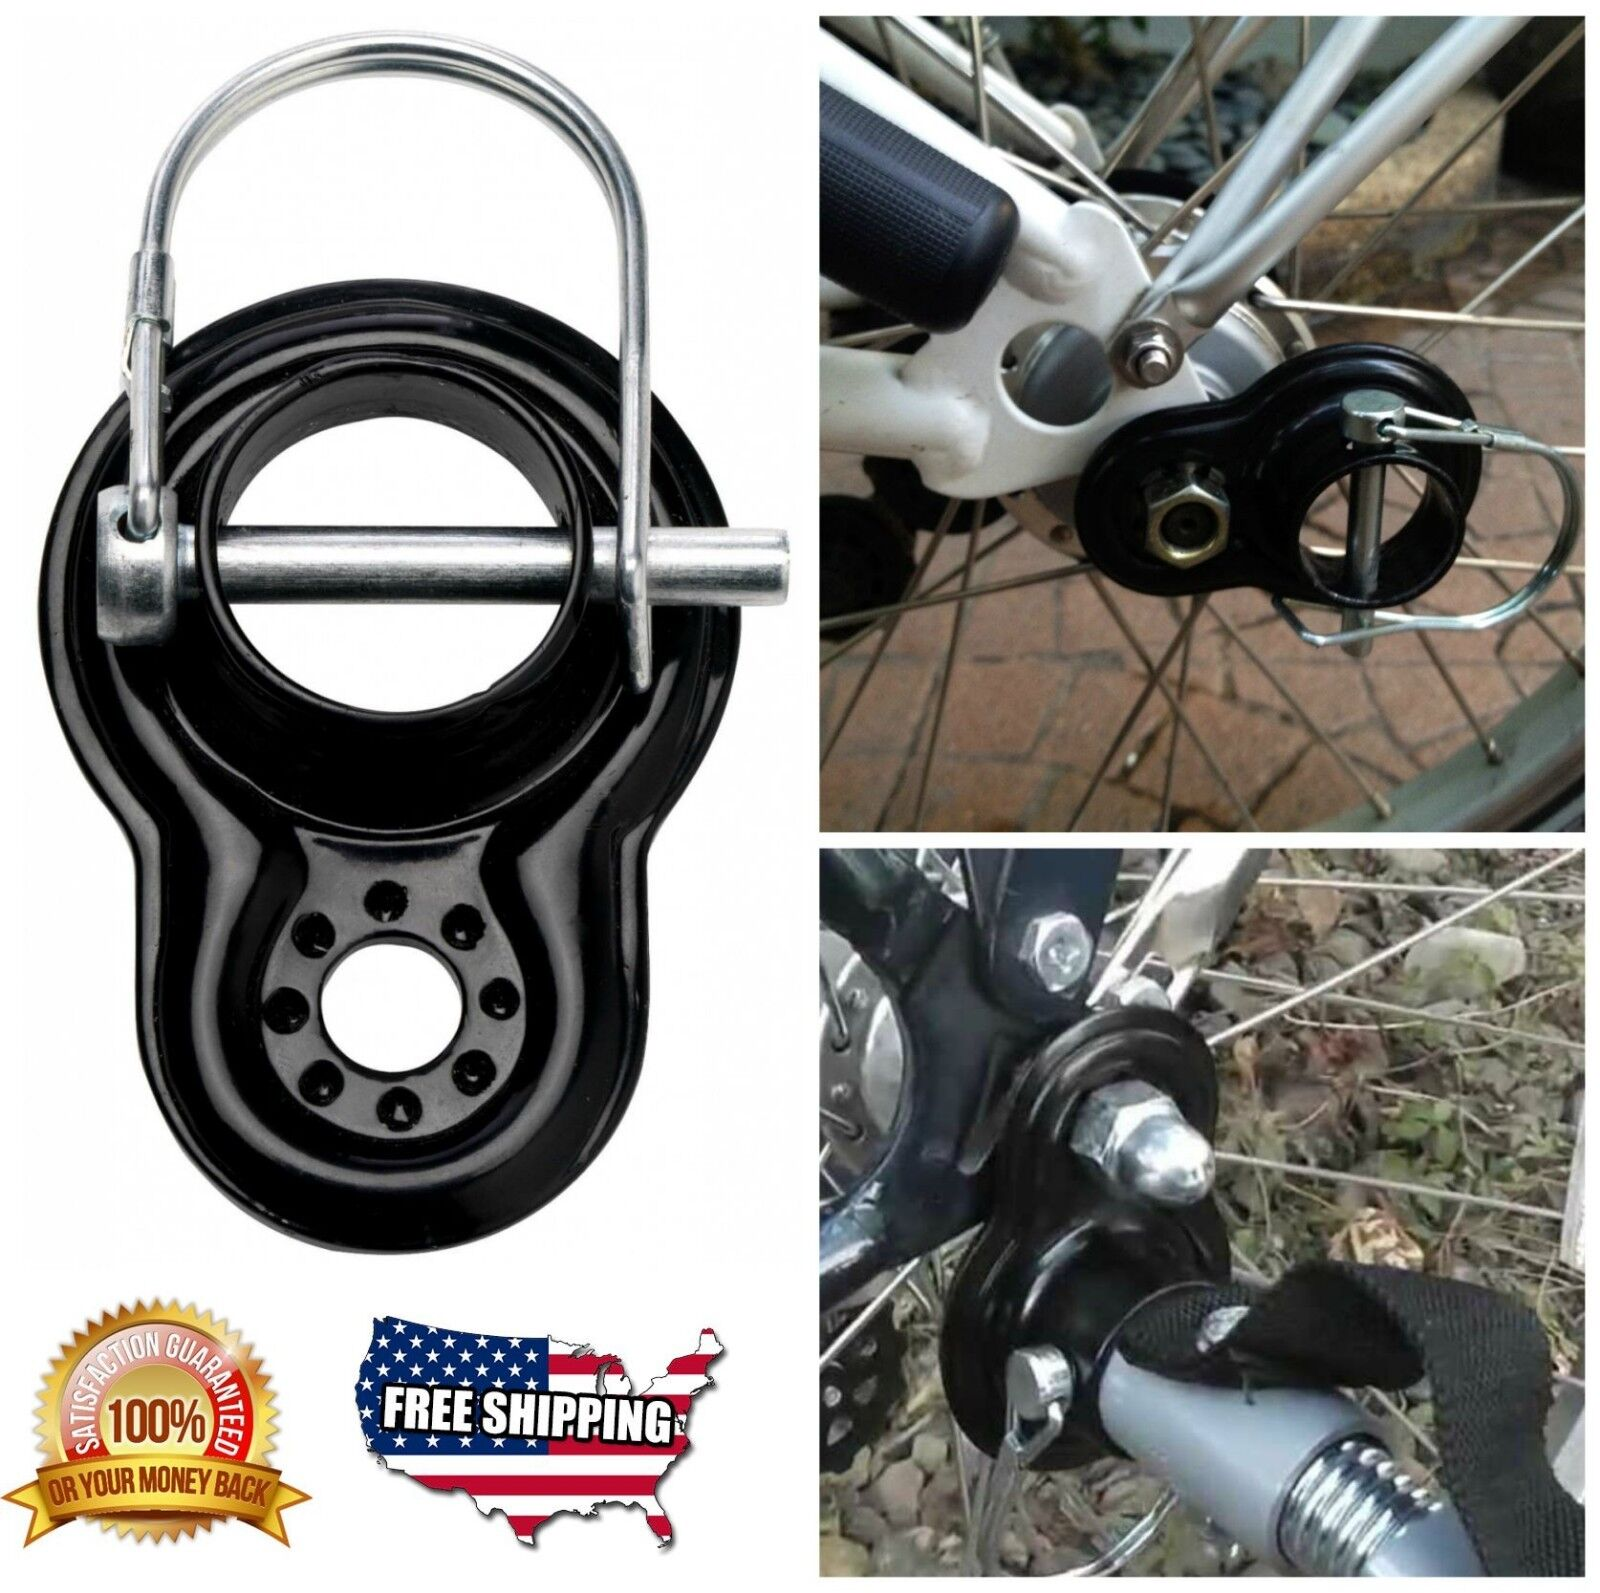 InStep Flat Coupler for InStep and Schwinn Bicycle Trailers